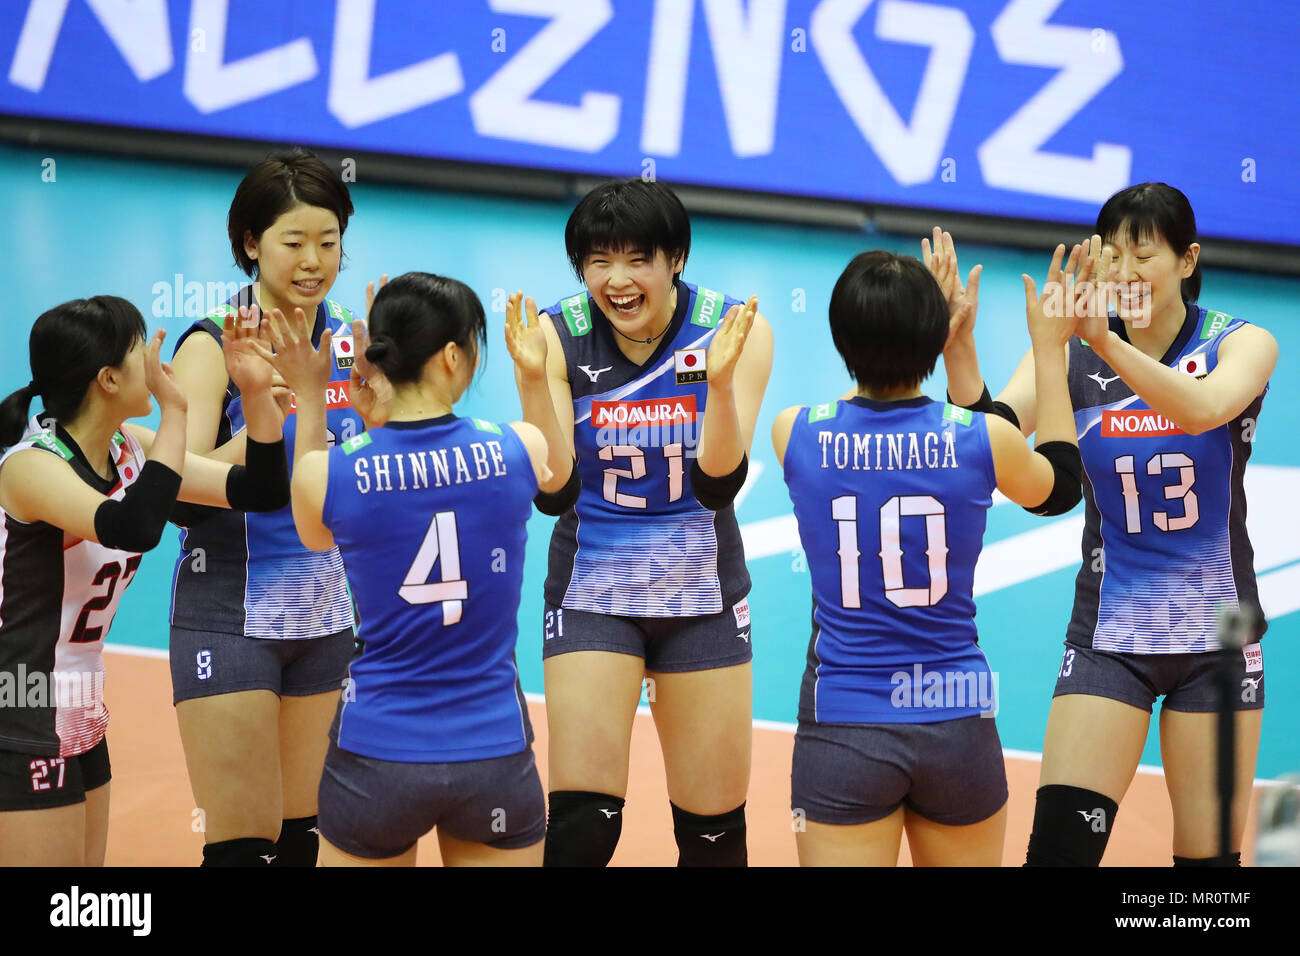 Sky Hall Toyota Aichi Japan 24th May 2018 Japan National Team Group May 24 2018 Volleyball